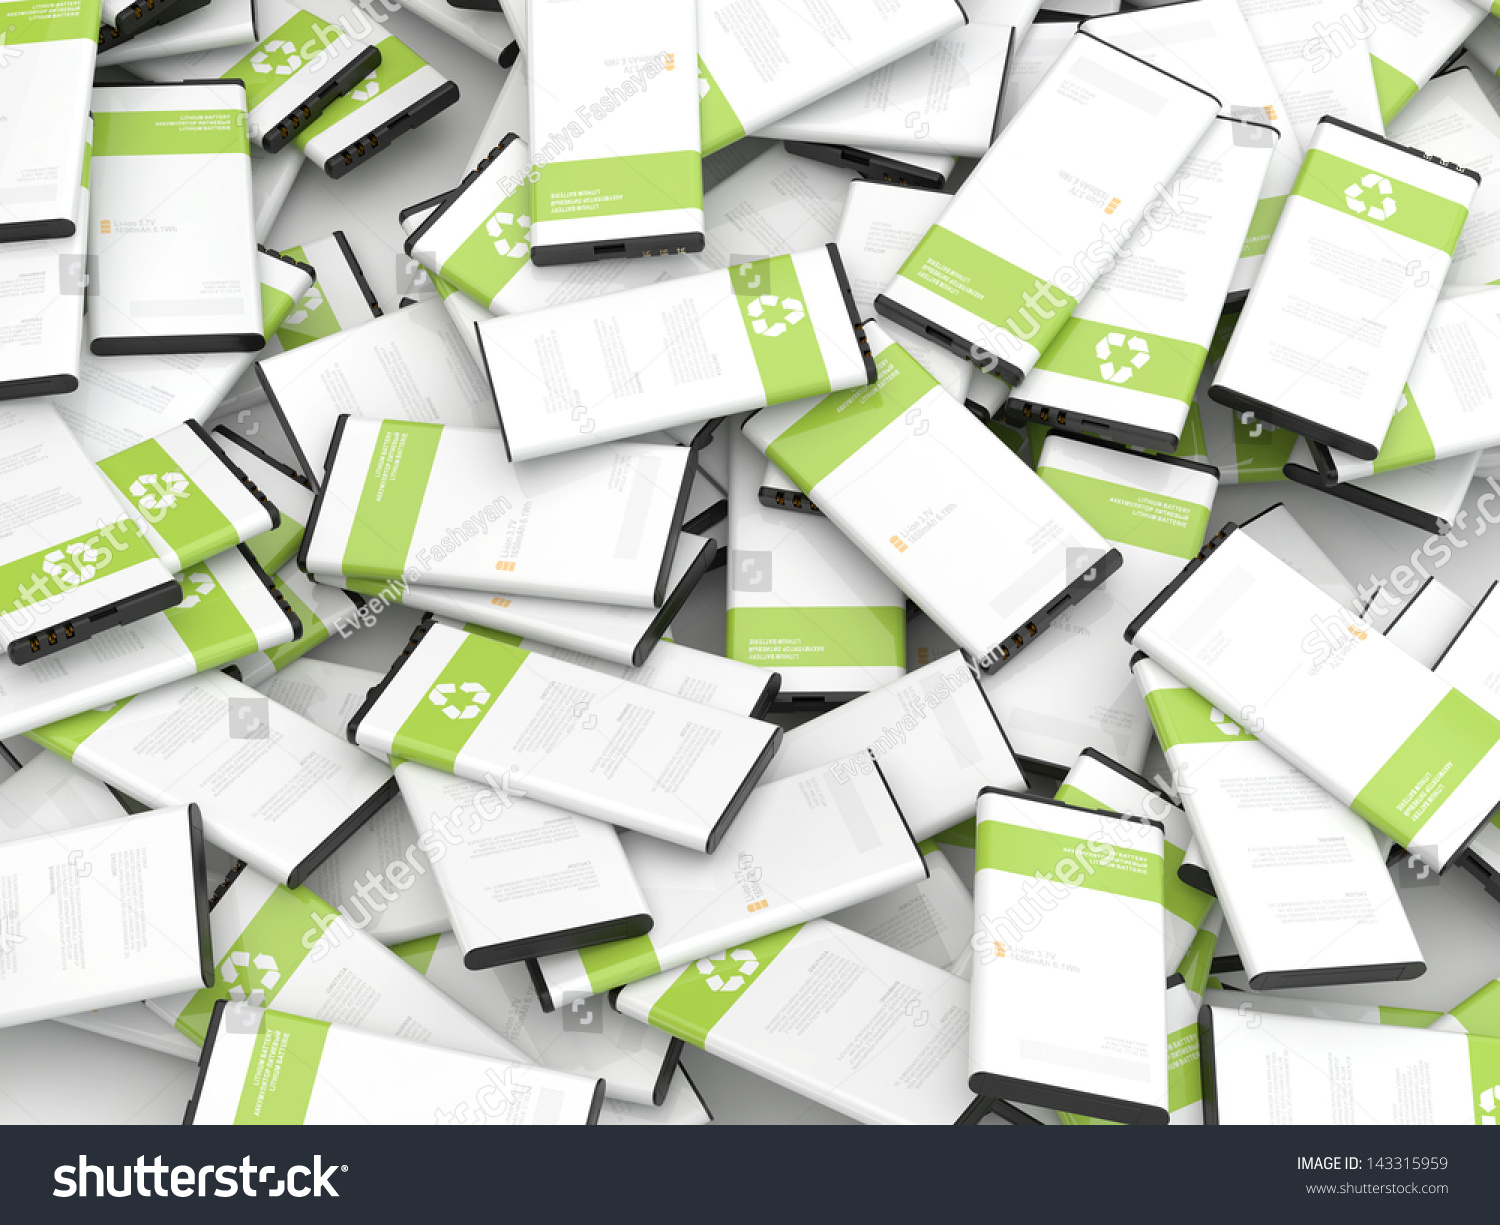 Recycling mobile phone batteries 3d render stock photo 143315959 shutterstock - Recycling mobel ...